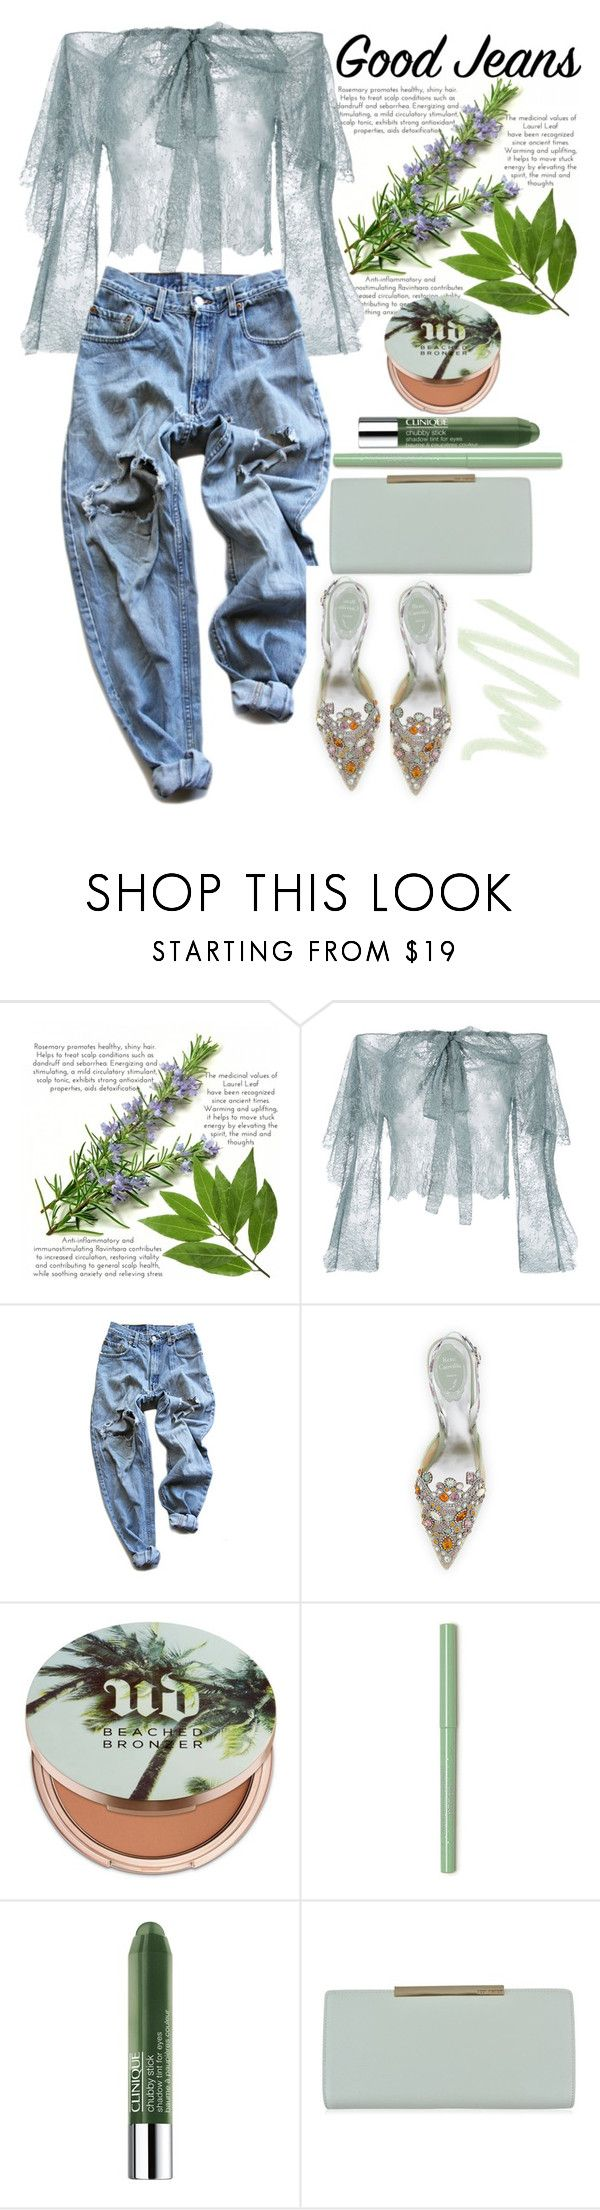 """""""Distressed Denim"""" by loves-elephants ❤ liked on Polyvore featuring Philosophy di Lorenzo Serafini, Levi's, René Caovilla, Urban Decay, Clinique, Ted Baker and Dolce&Gabbana"""